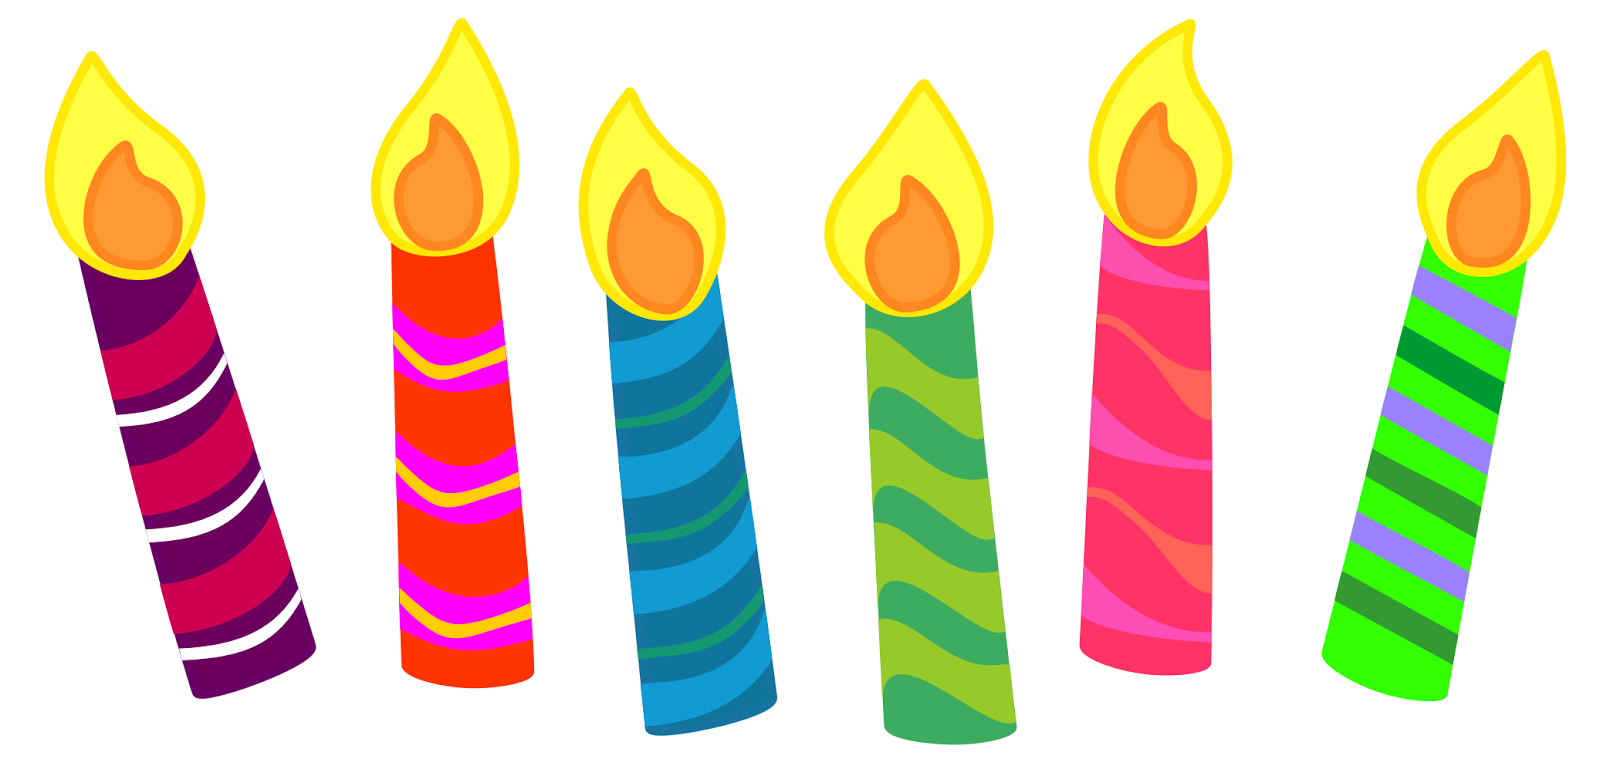 candles clipart free large images [ 1600 x 773 Pixel ]